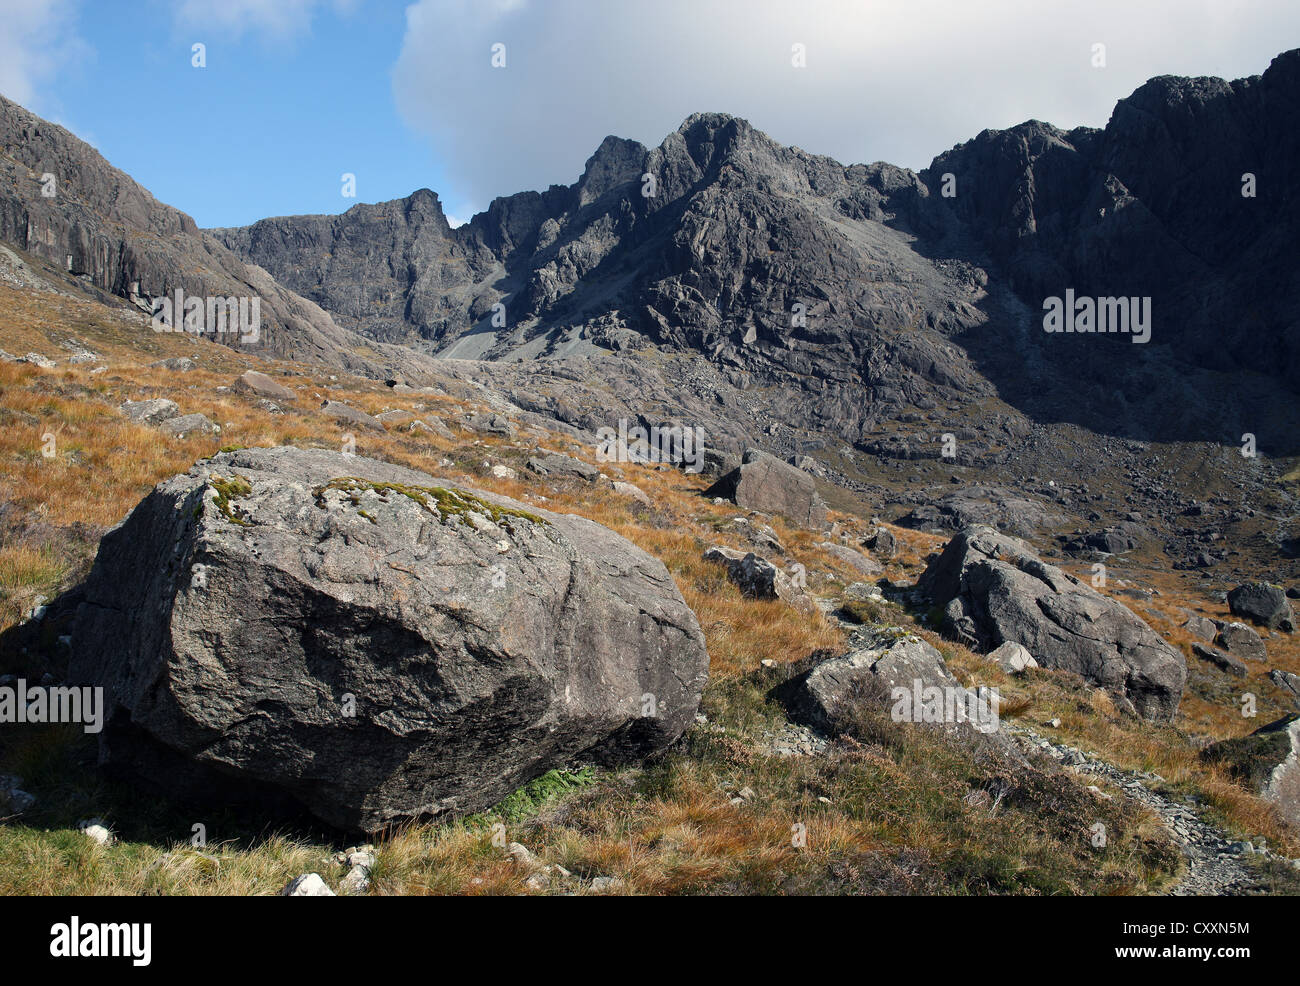 The wild beauty of the Cuillin Mountains on the Isle of Skye in the Scottish Highlands - Stock Image